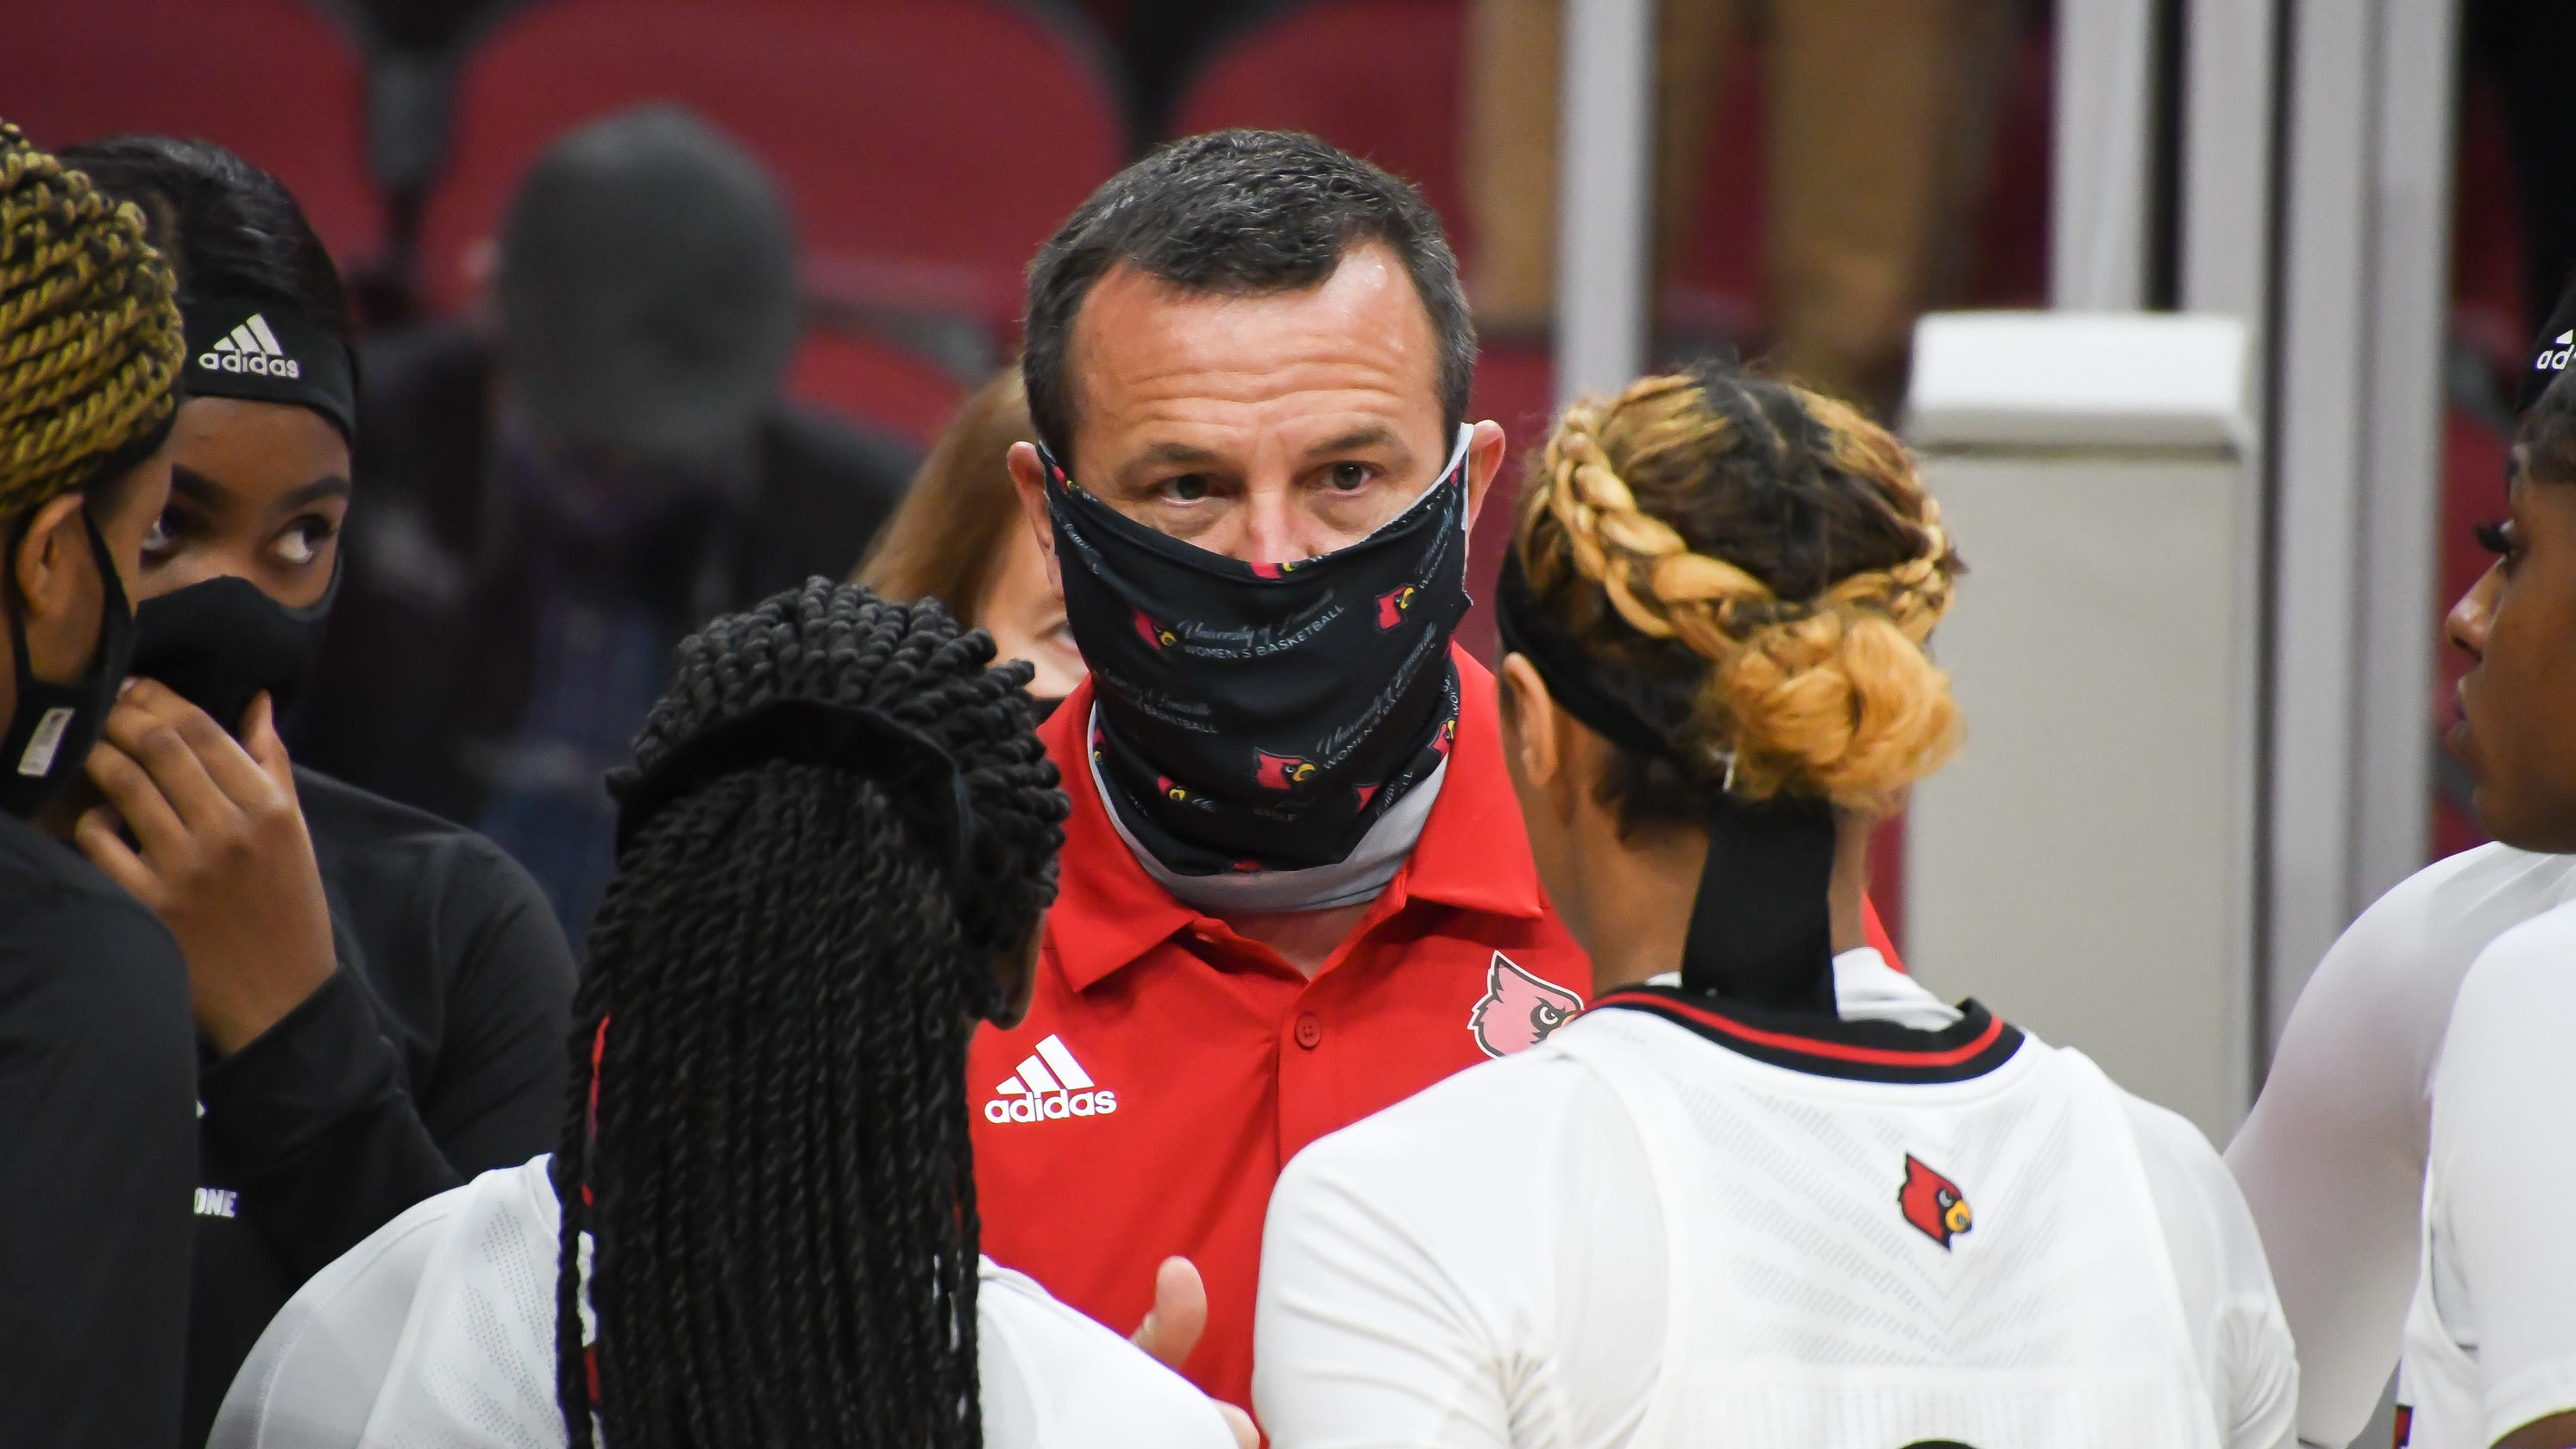 Louisville women's basketball team pauses team activities due to positive COVID-19 test